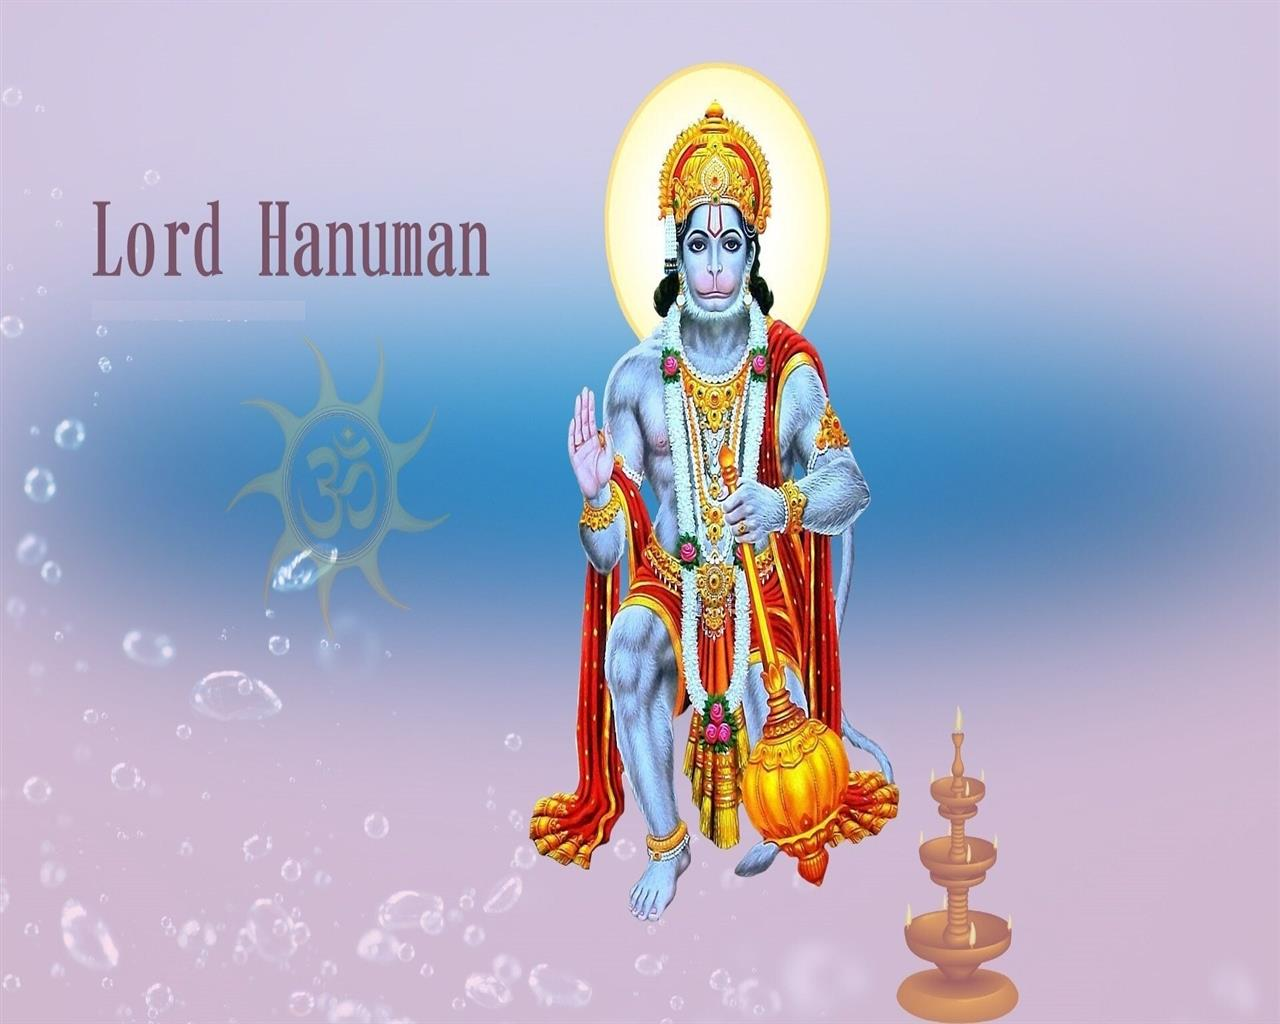 1280x1024 Photo of Lord Hanuman